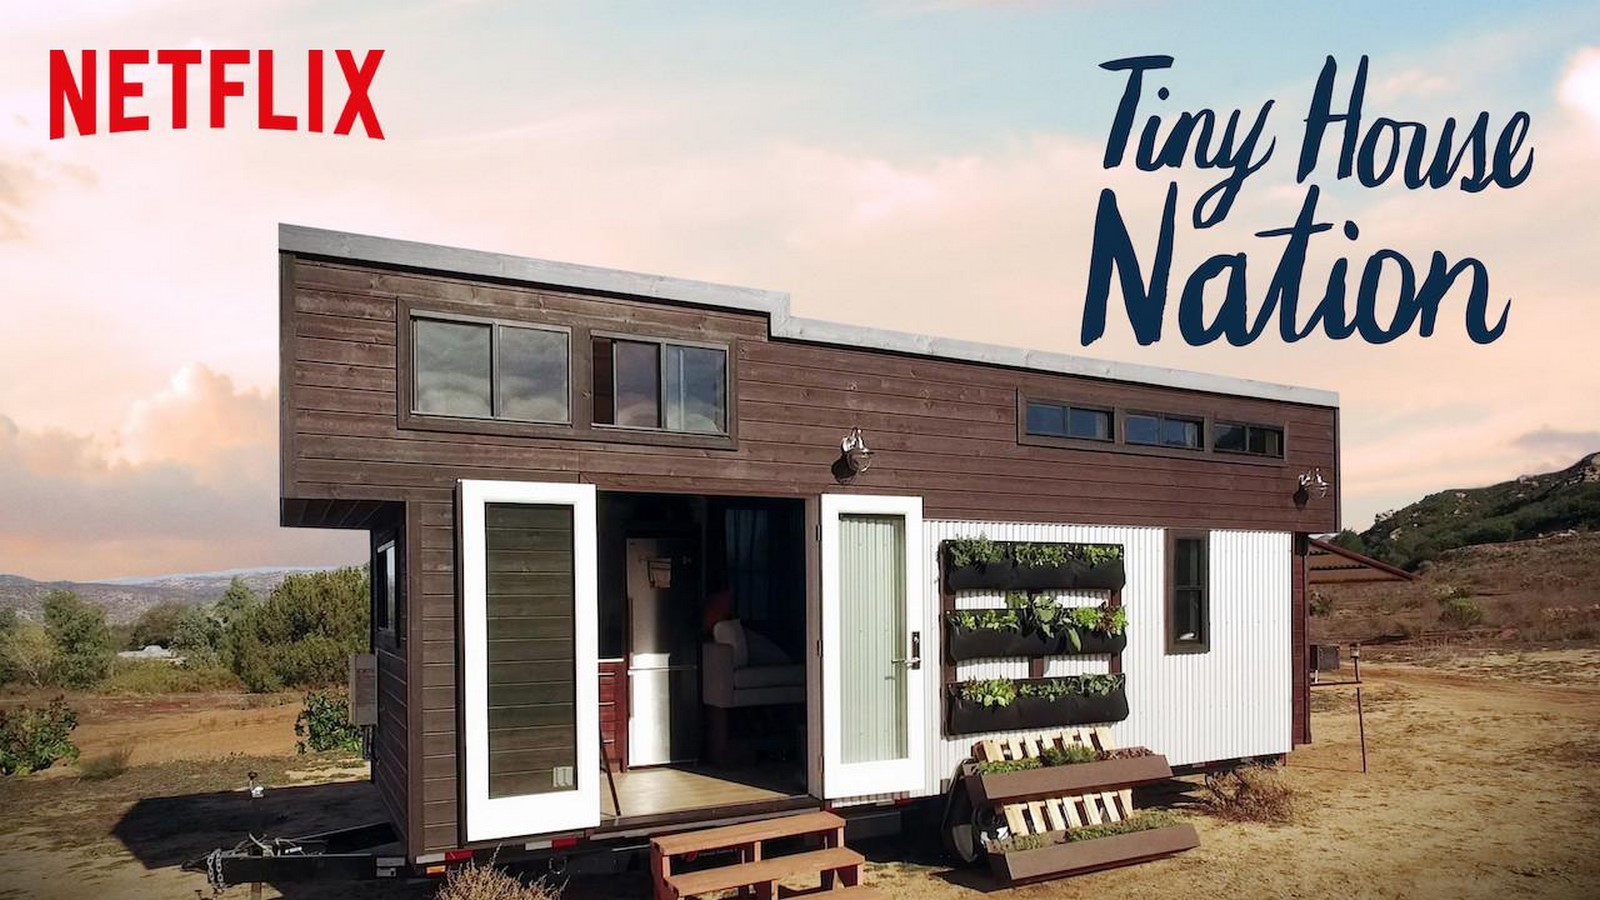 10 Architectural/Design shows on Netflix everyone should watch - Sheet3